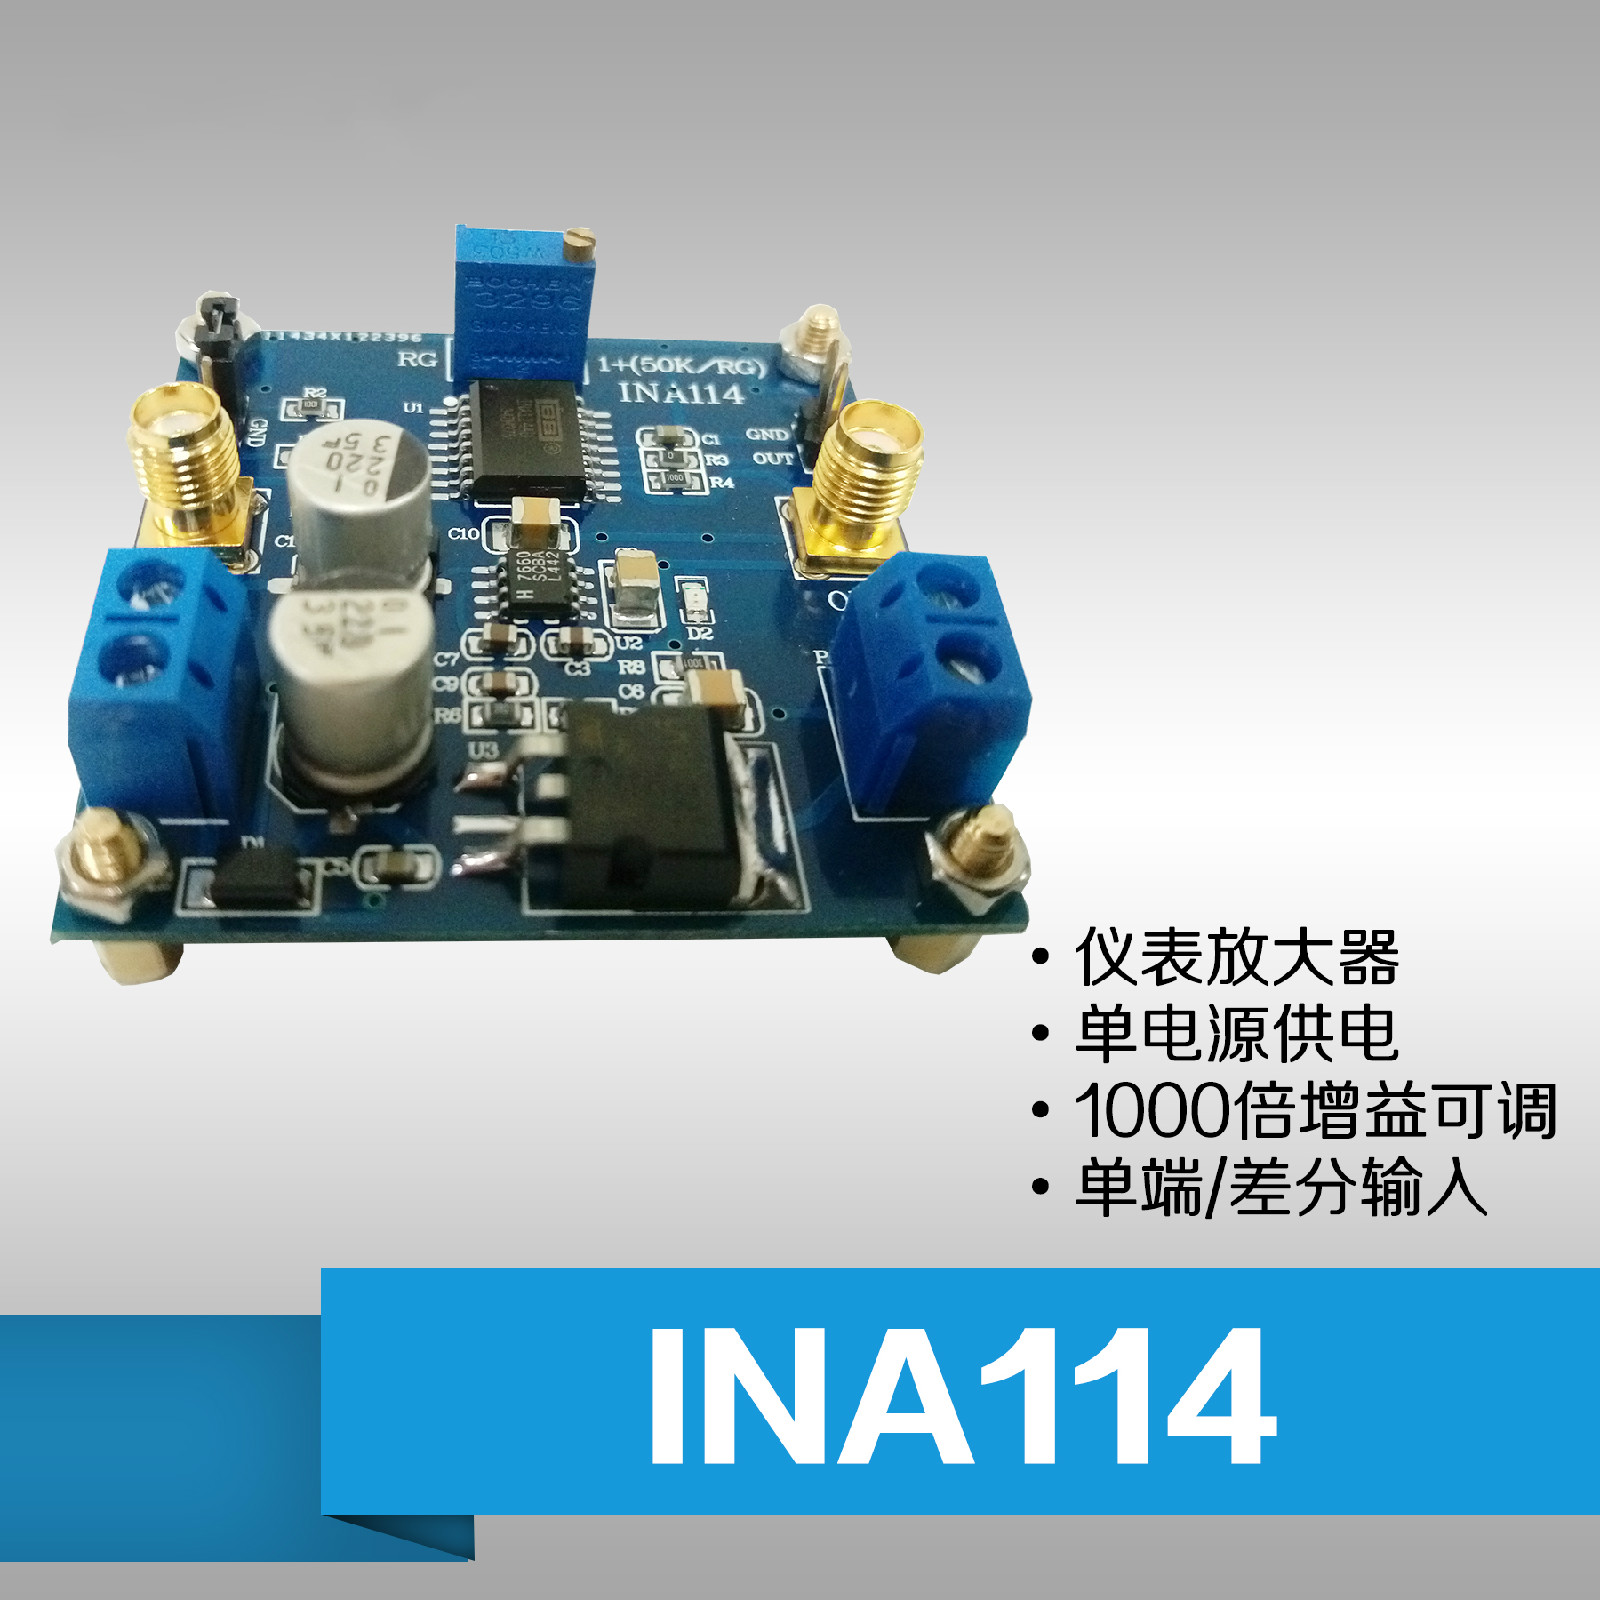 INA114 Instrument Amplifier 1000 fold Gain Adjustable Single Power Supply Single End/Differential Input